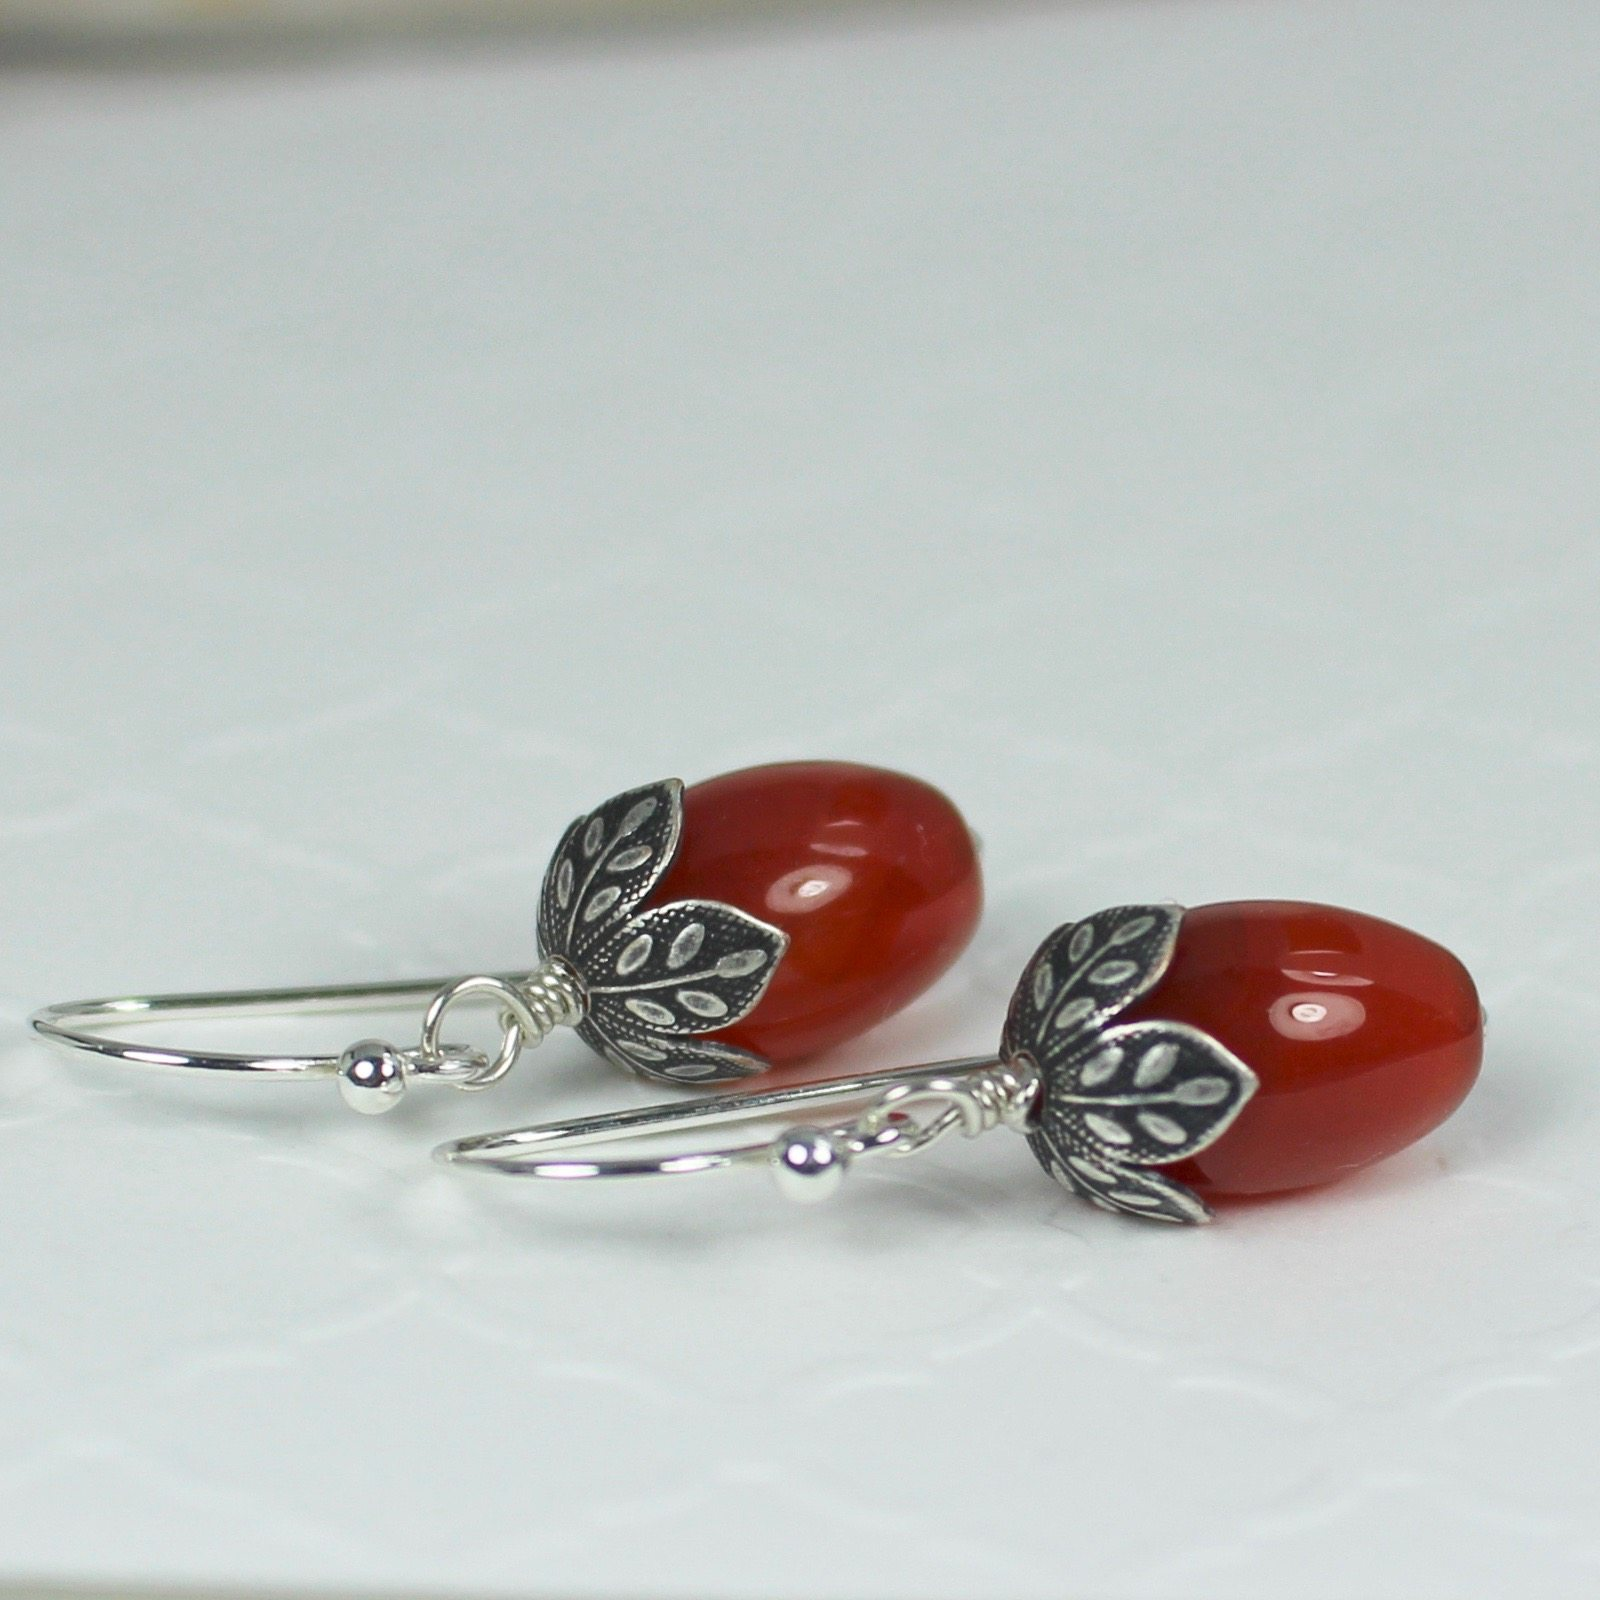 hampshire earrings design londonderry carn product rh new studio richters carnelian jewelry